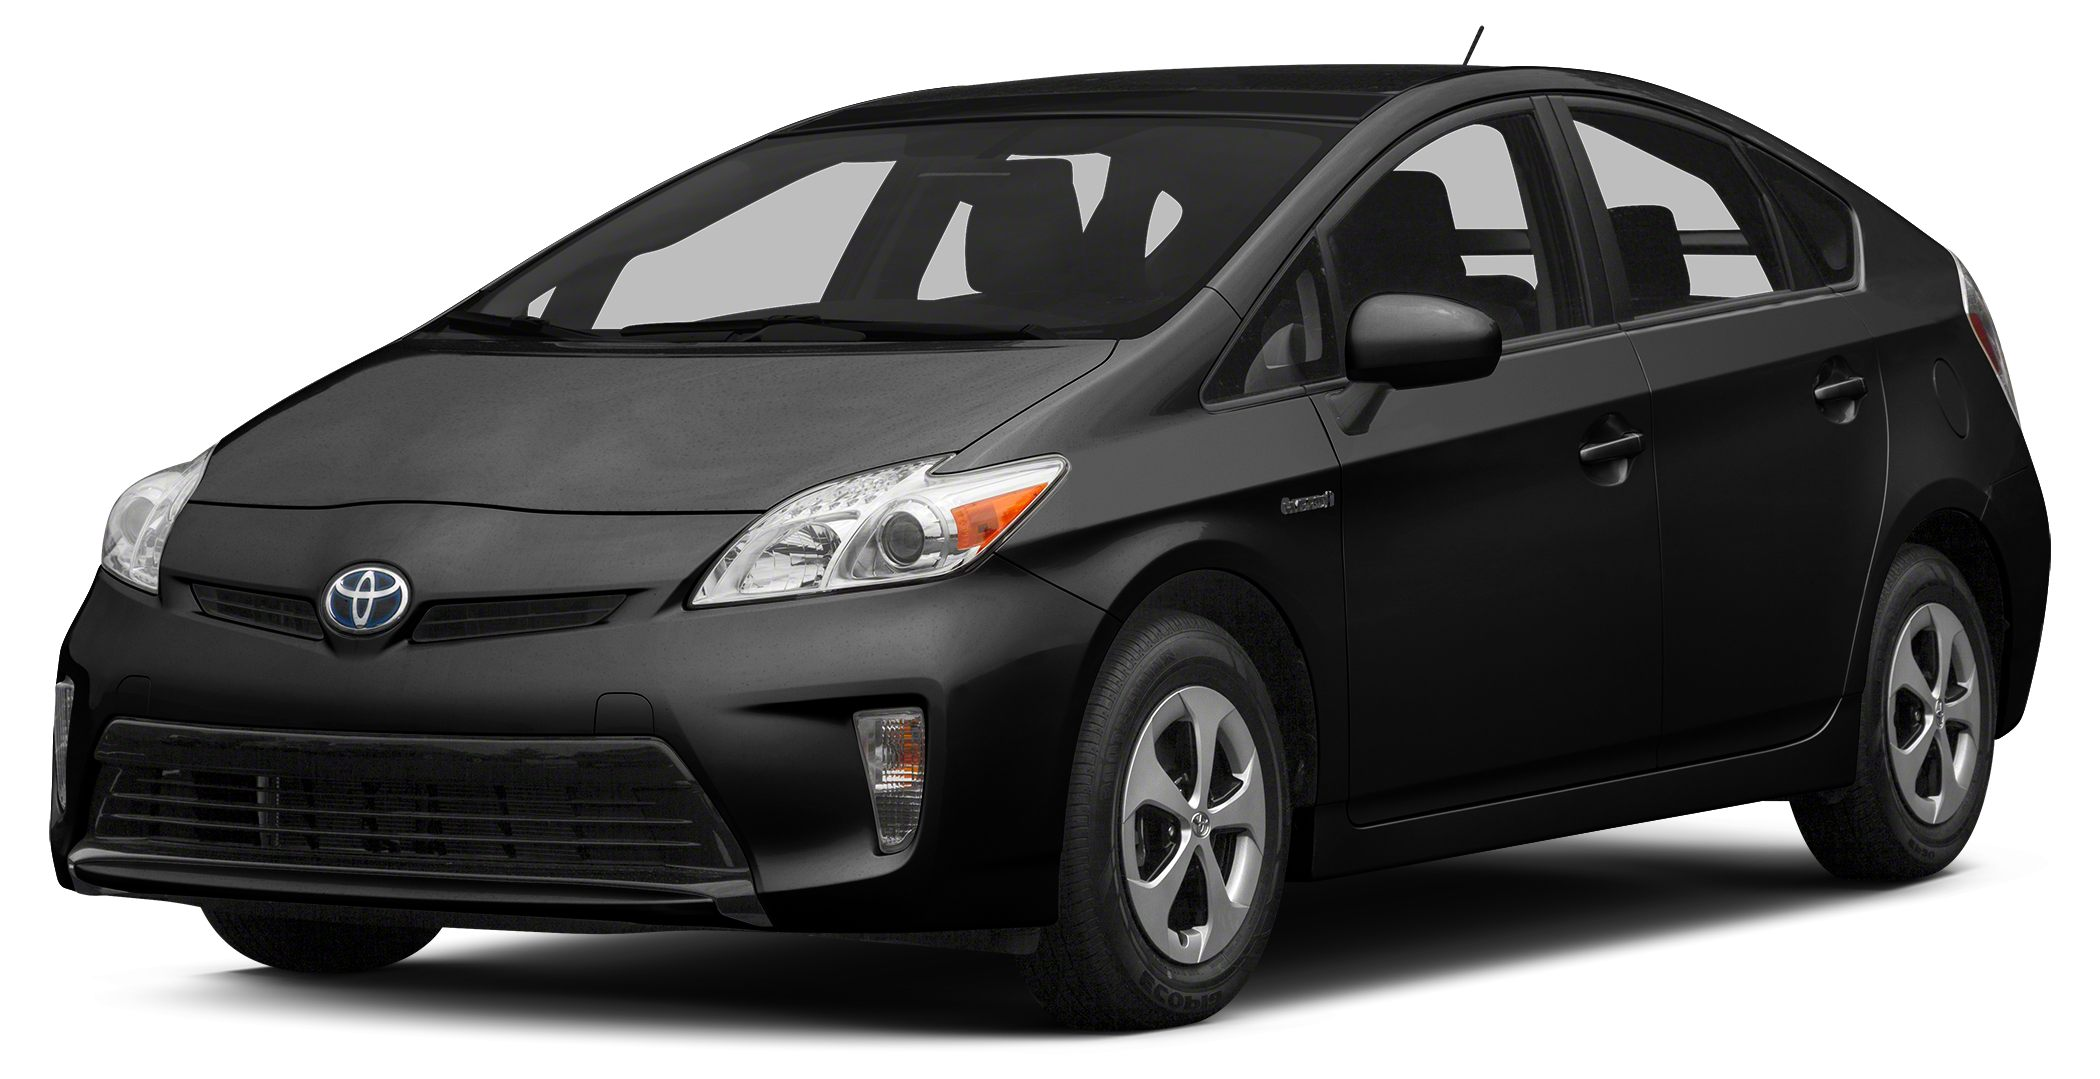 2015 Toyota Prius Four BLACK exterior and DARK GRAY interior Four trim CARFAX 1-Owner EPA 48 MP